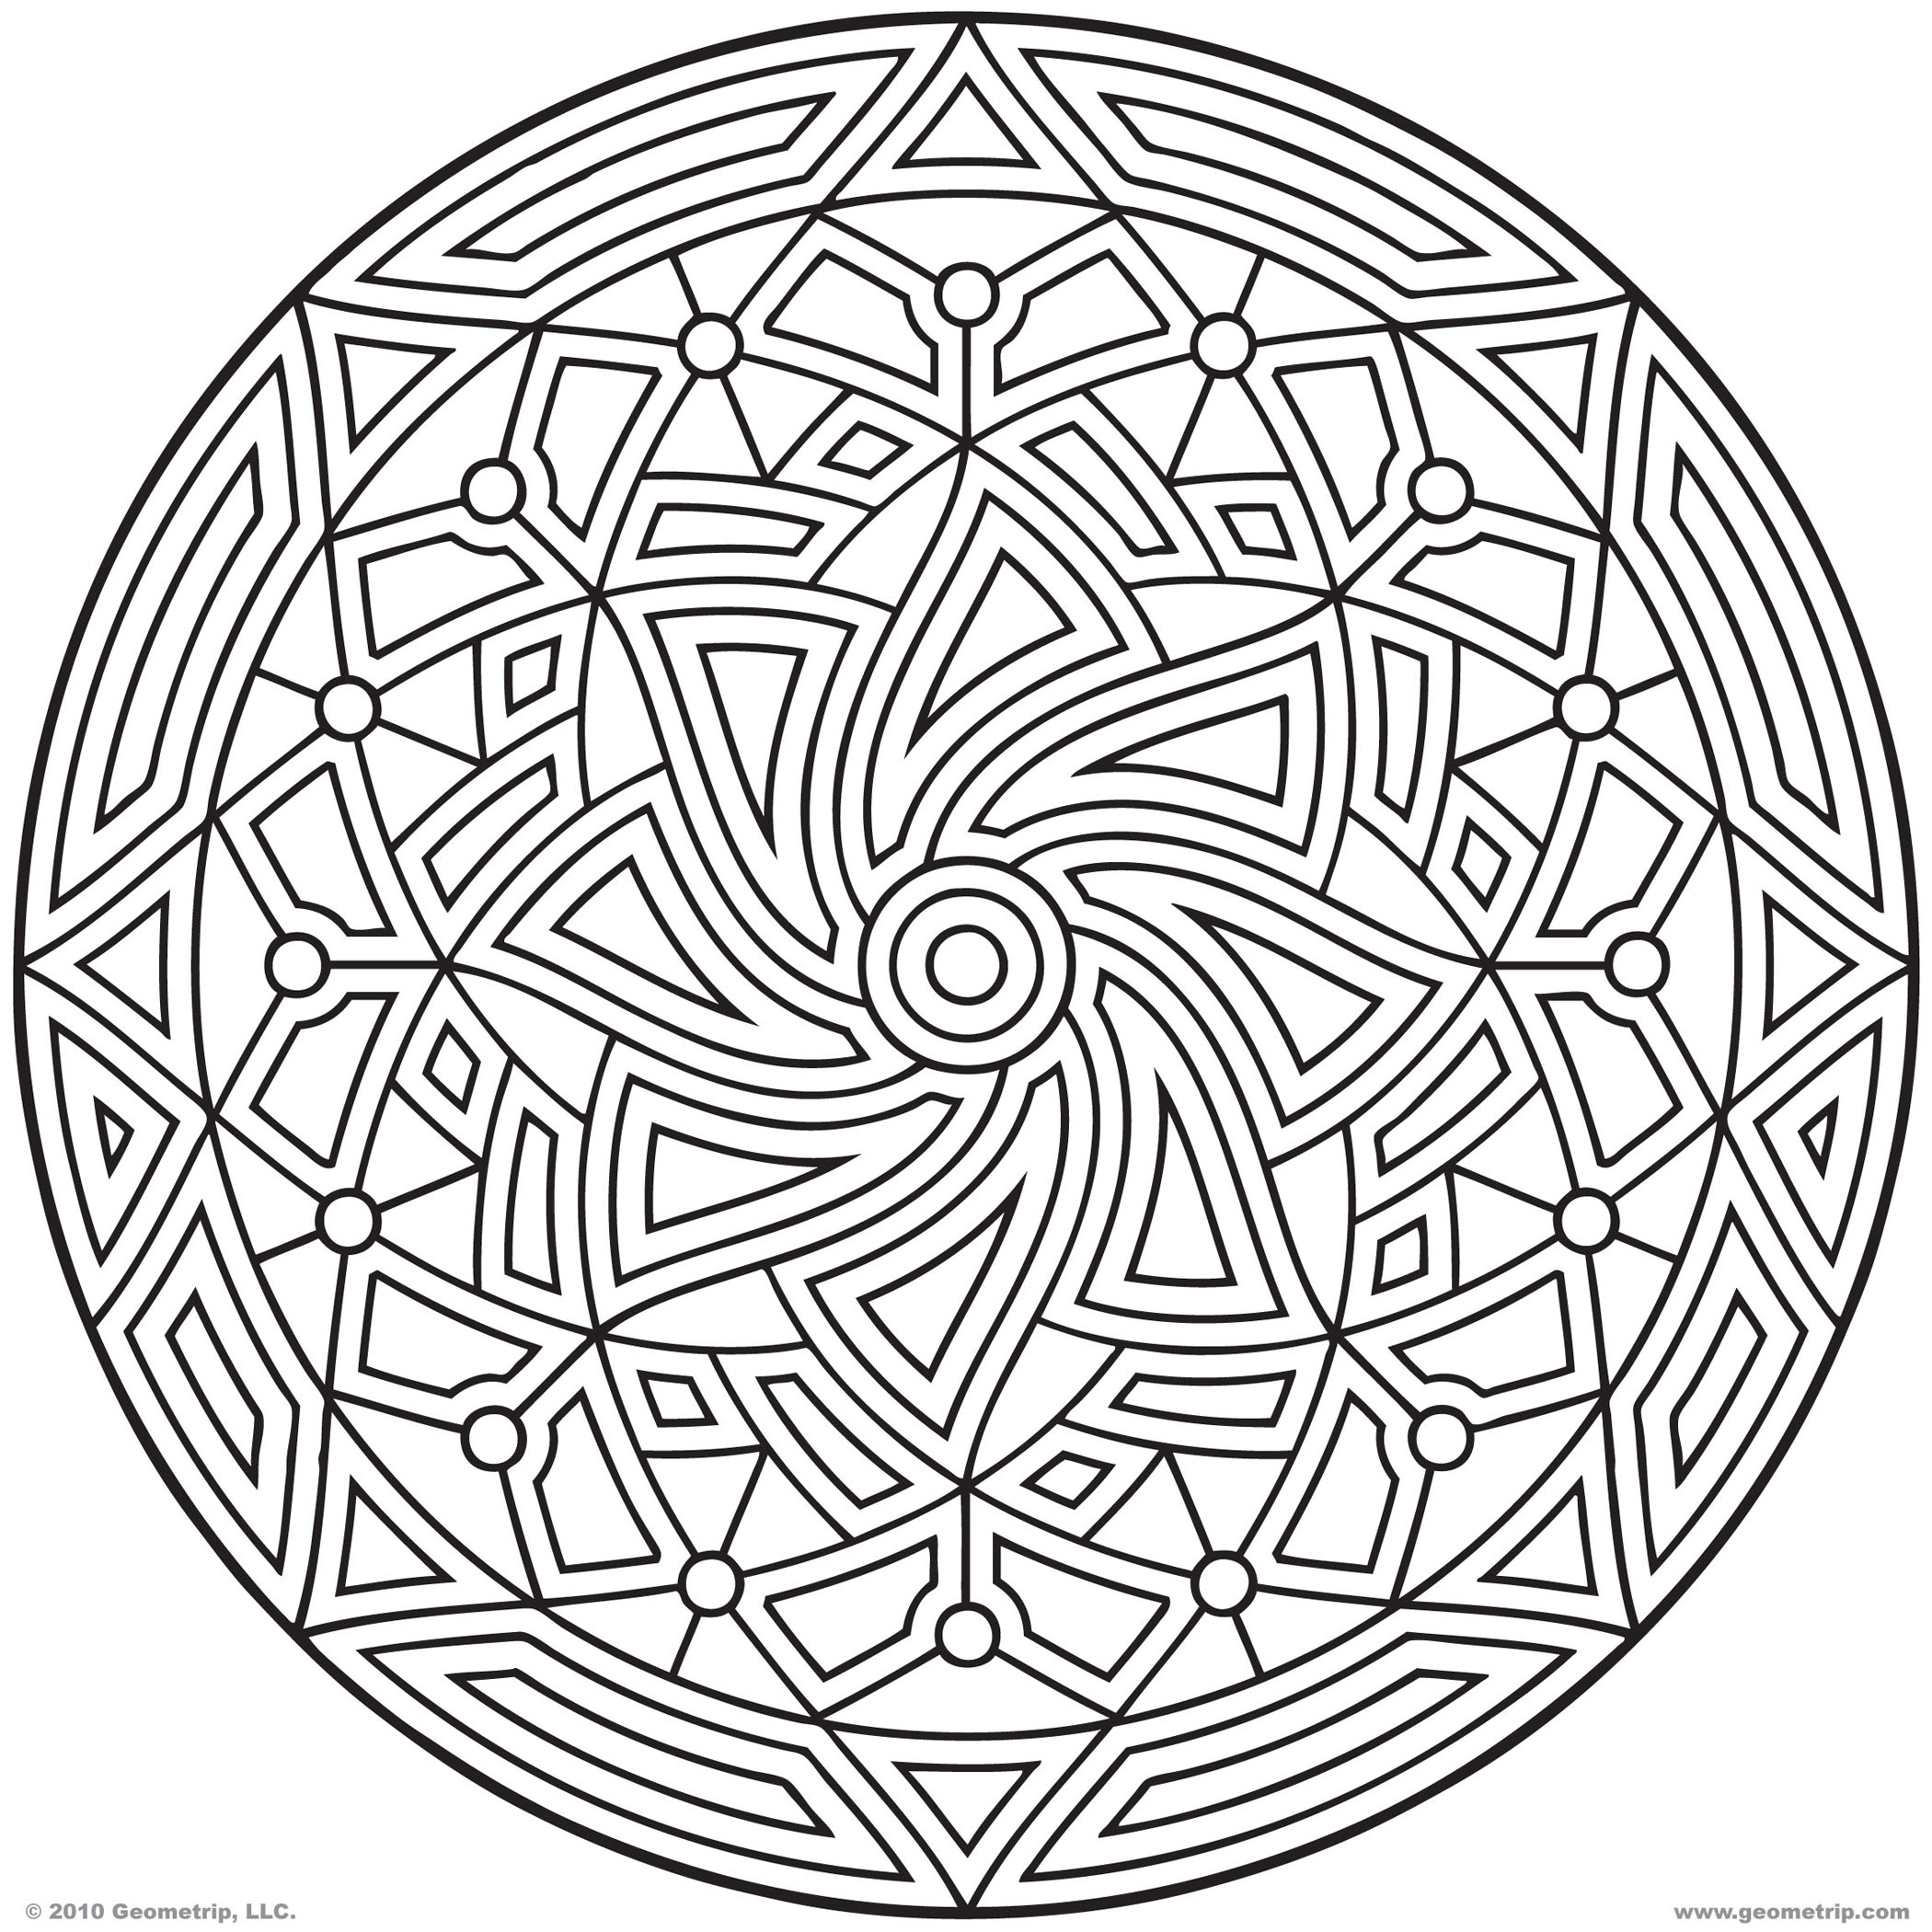 9 printable animal coloring pages geometric design pattern images